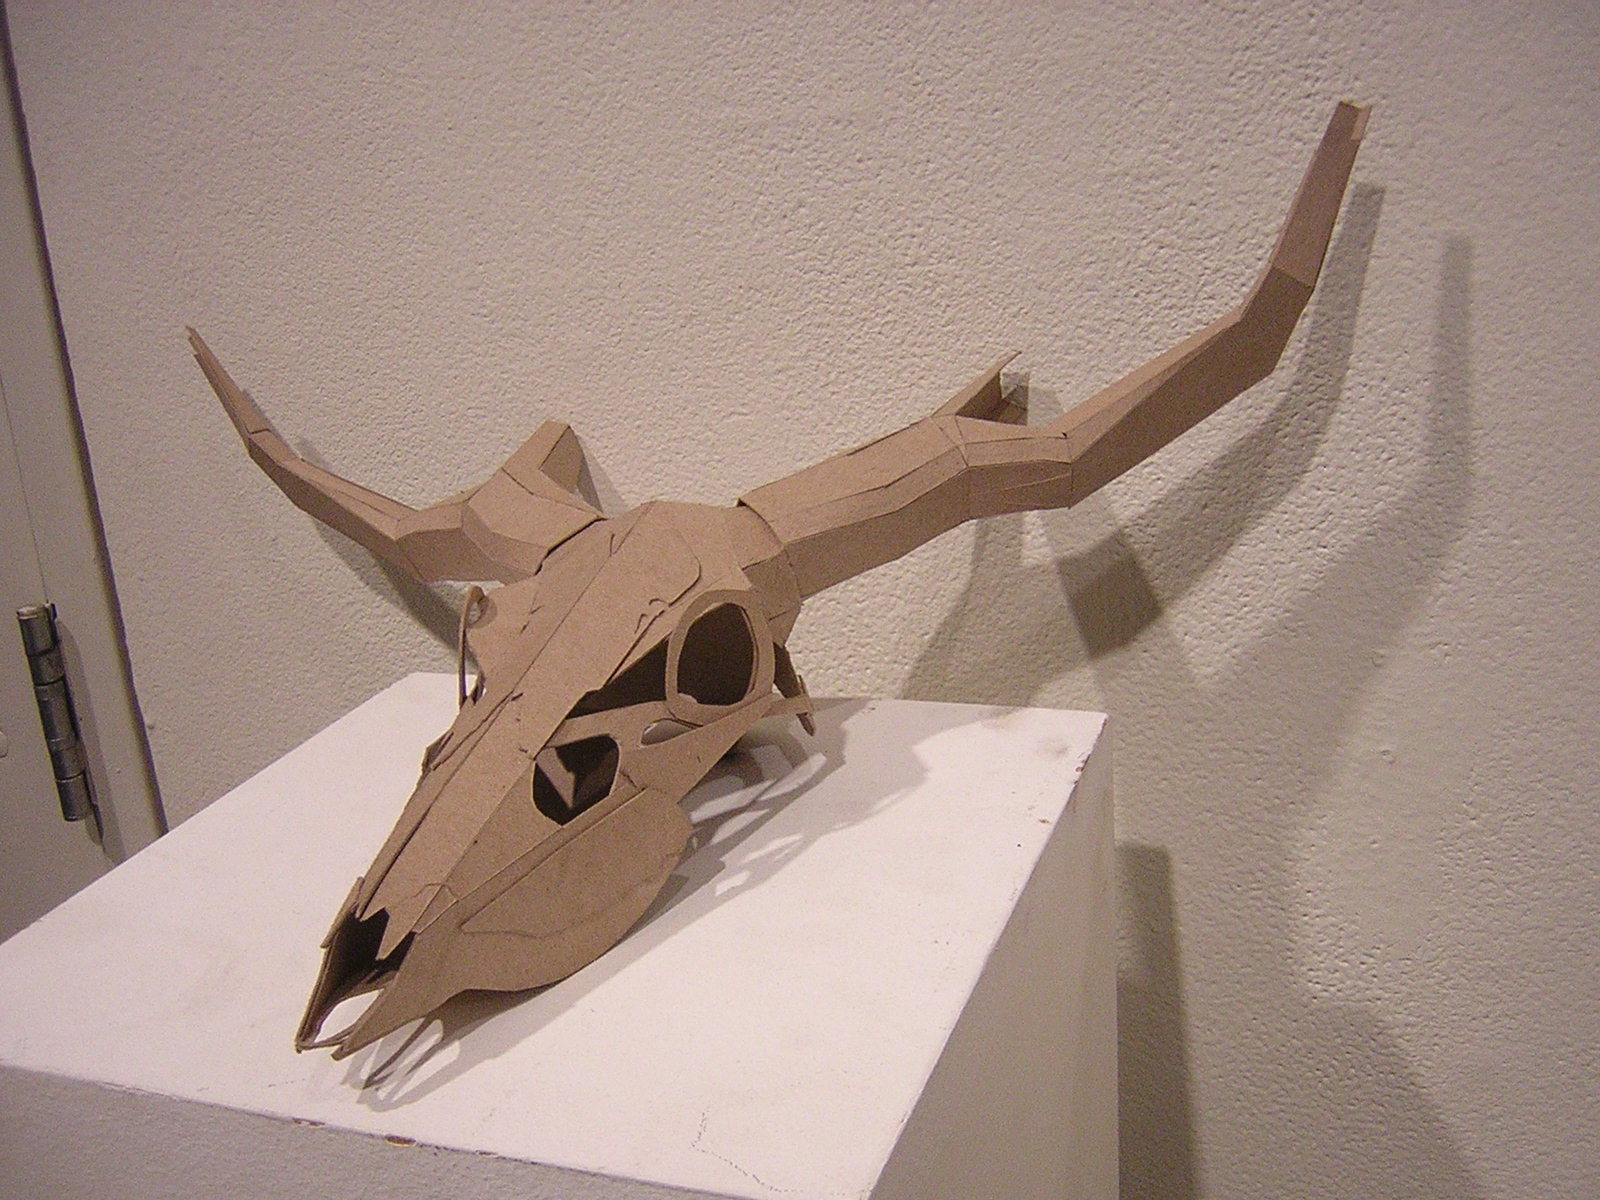 Complimentary studies sculptural metals cardboard skull complimentary studies sculptural metals cardboard skull research pronofoot35fo Gallery